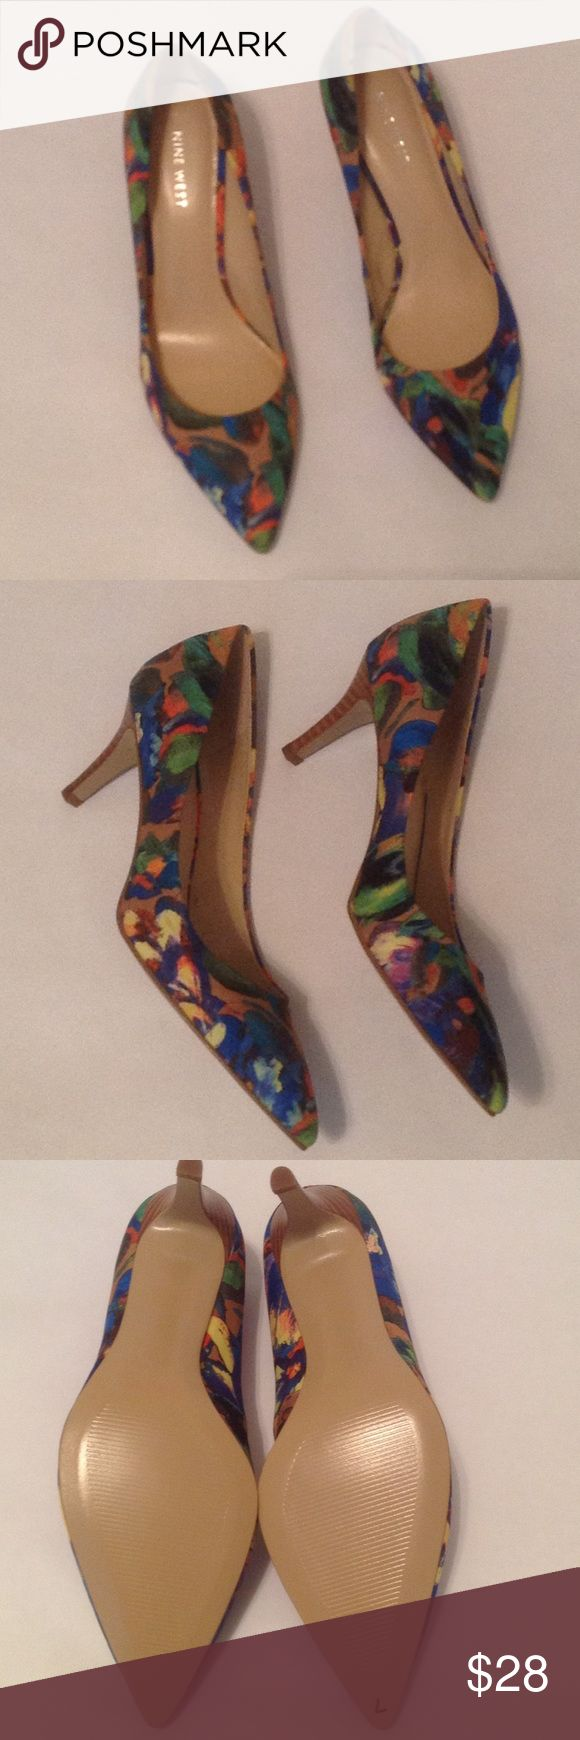 "🆕 Gorgeous floral Nine West heels Beautiful heels in shades of blue, yellow, coral. Fabric upper, man made sole. 3"" heel. Never worn. There is a ""7"" on the sole that was there when I bought it, don't know what it means. Just stunning! Size 8M. NWOT, no box. Nine West Shoes Heels"